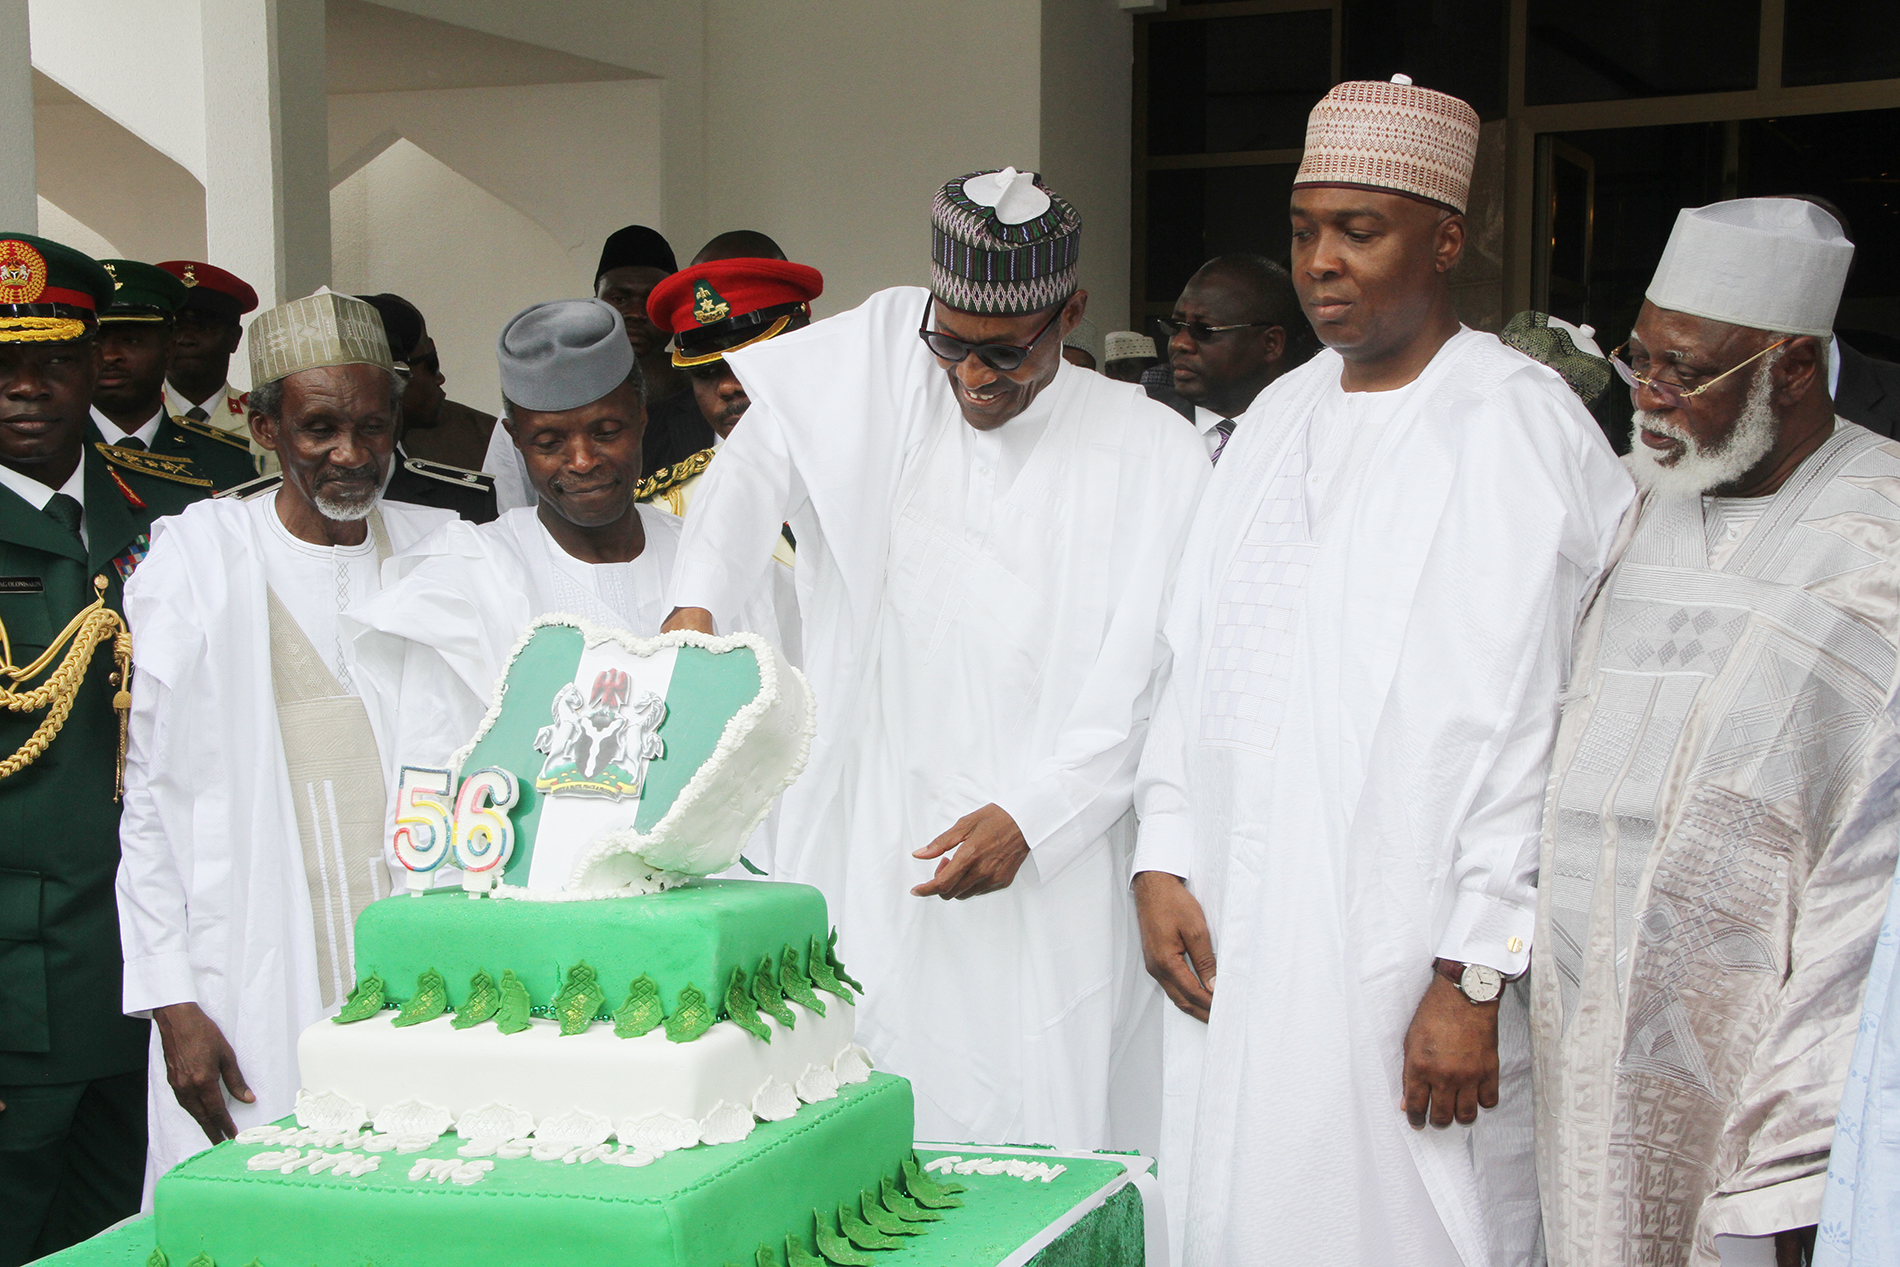 Chief Justice of Nigeria Justice Mahmud Mohammed,Vice President Prof. Yemi Osinbajo, President Mohammadu Buhari, Senate President Senator Bukola Saraki and Former Head of State Gen Abdulsalami Abubakar Cutting the Cake to mark Nigeria 56TH Independence Anniversary at the Presidential Villa Abuja on the 1st Oct 2016. PHOTO: PHILIP OJISUA